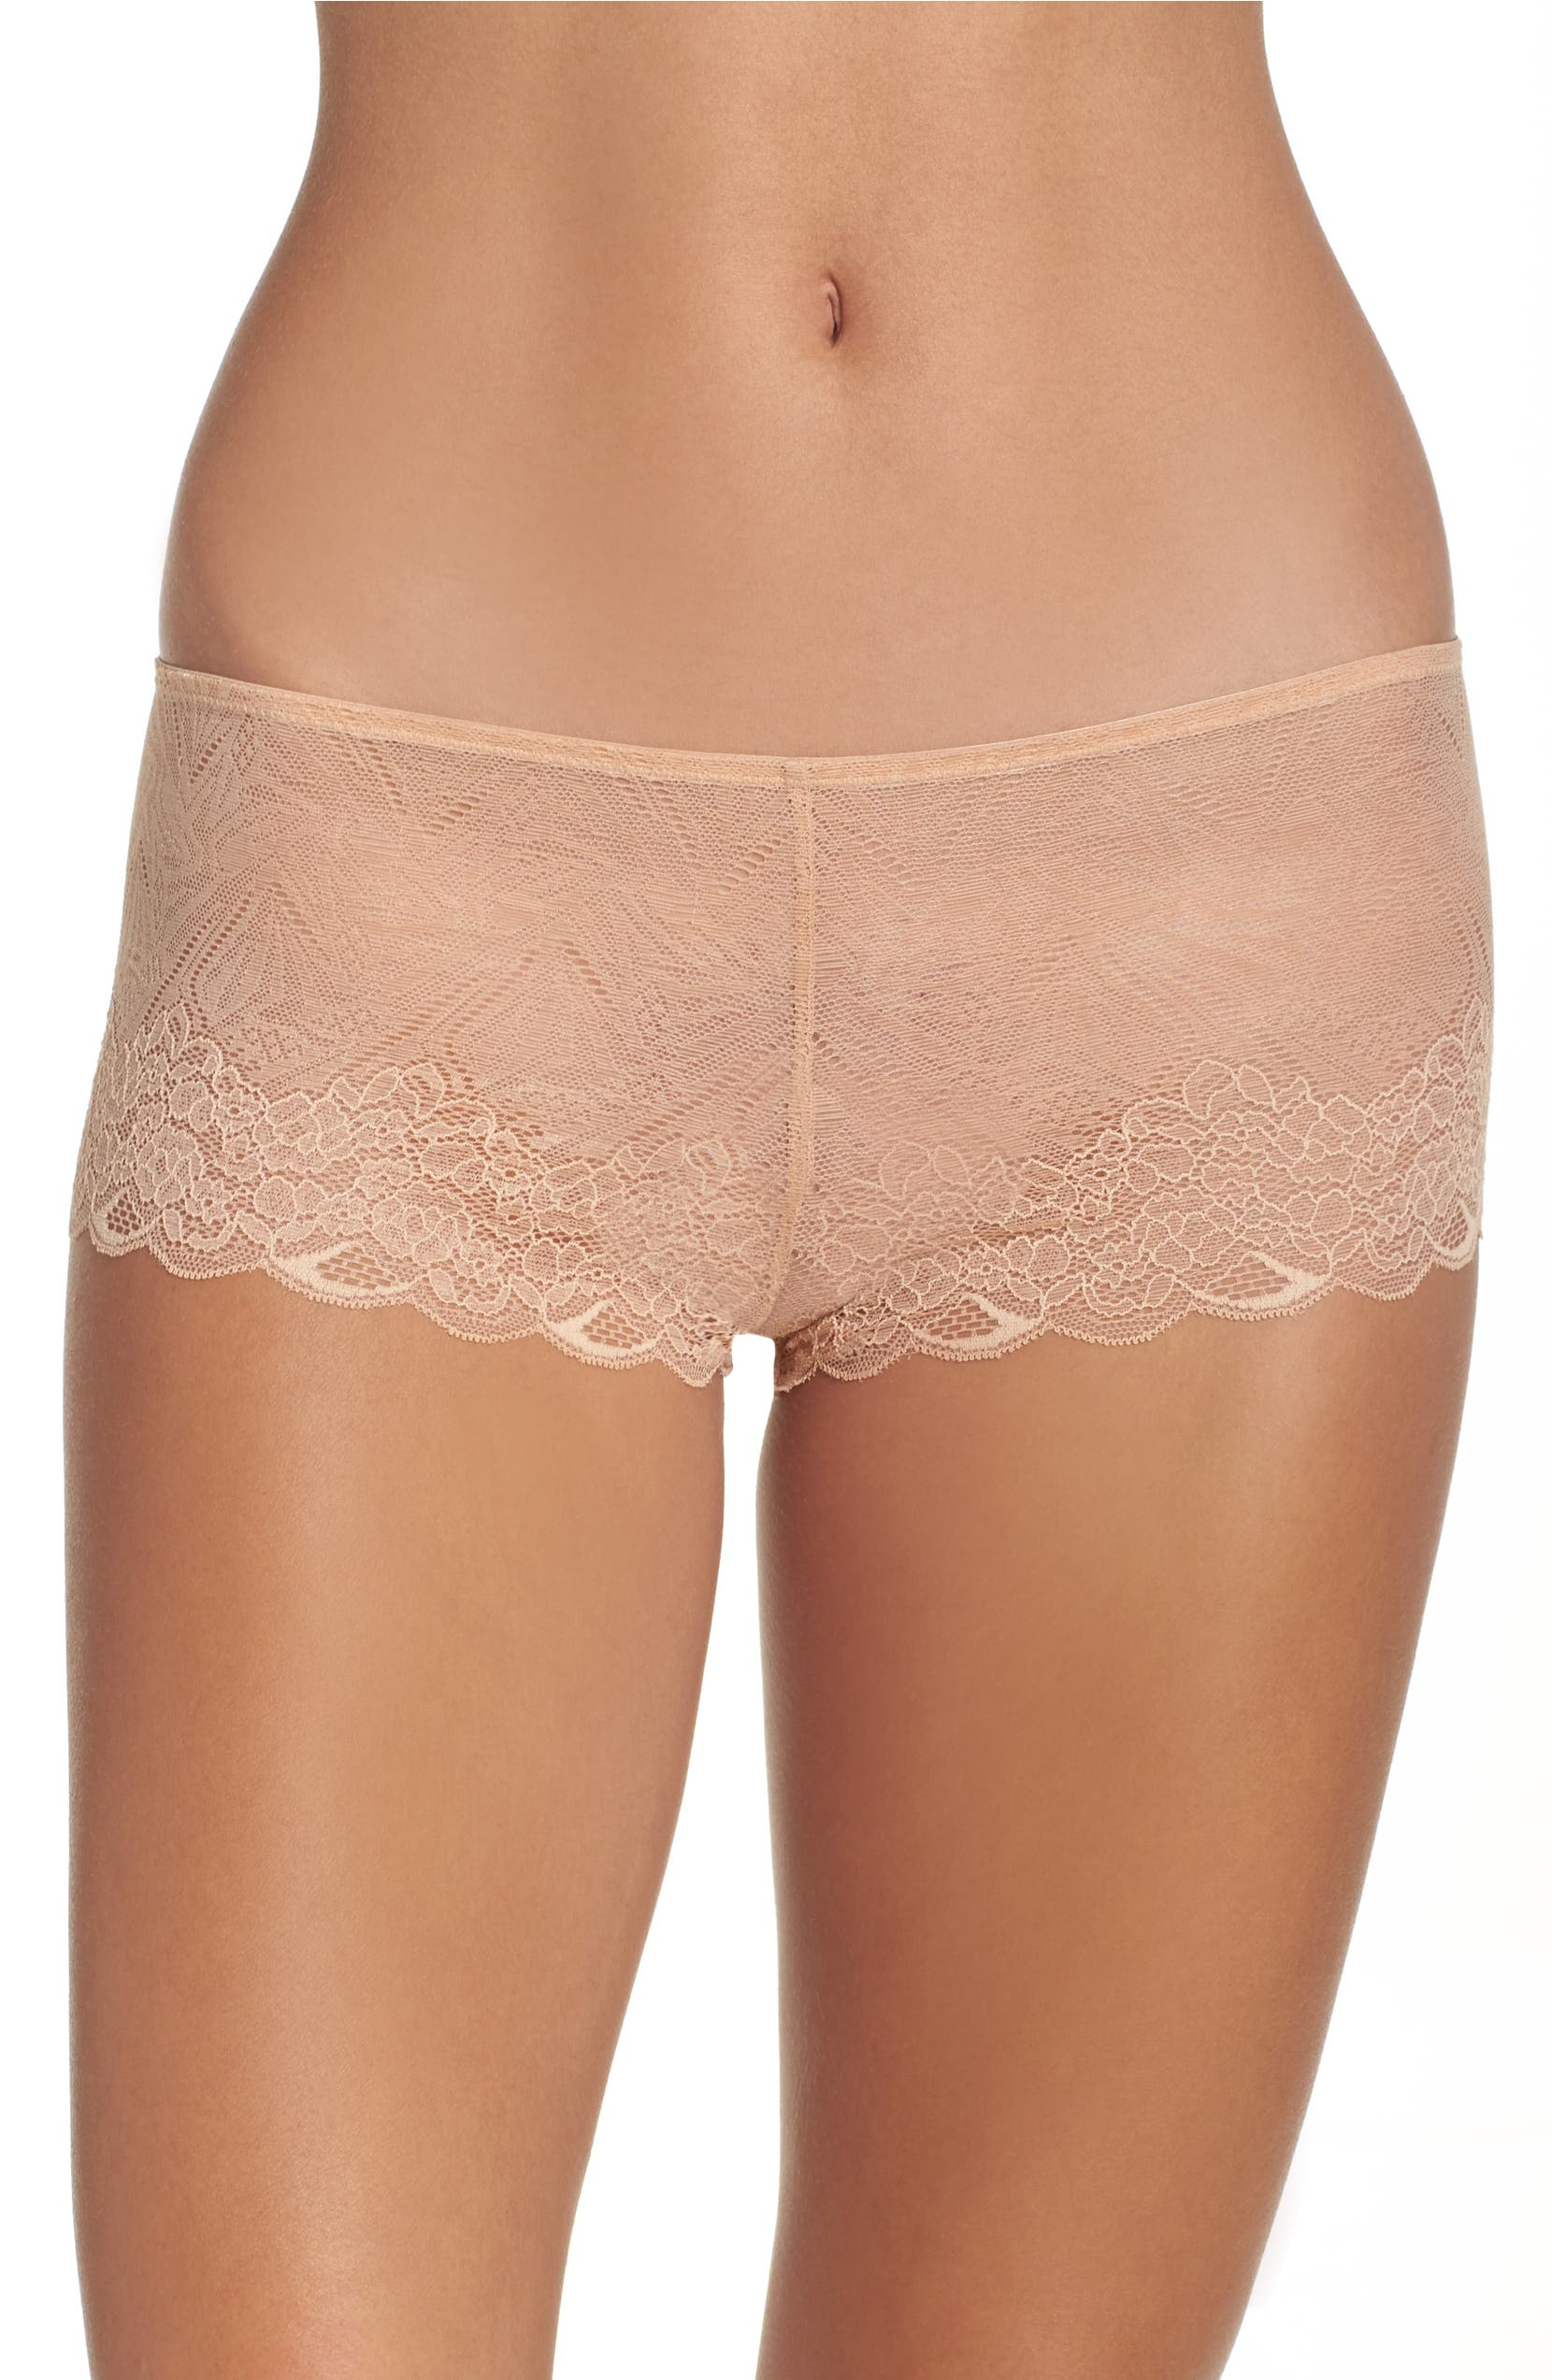 7ab6c63982d Madewell Lace Boyshorts (3 for  33)